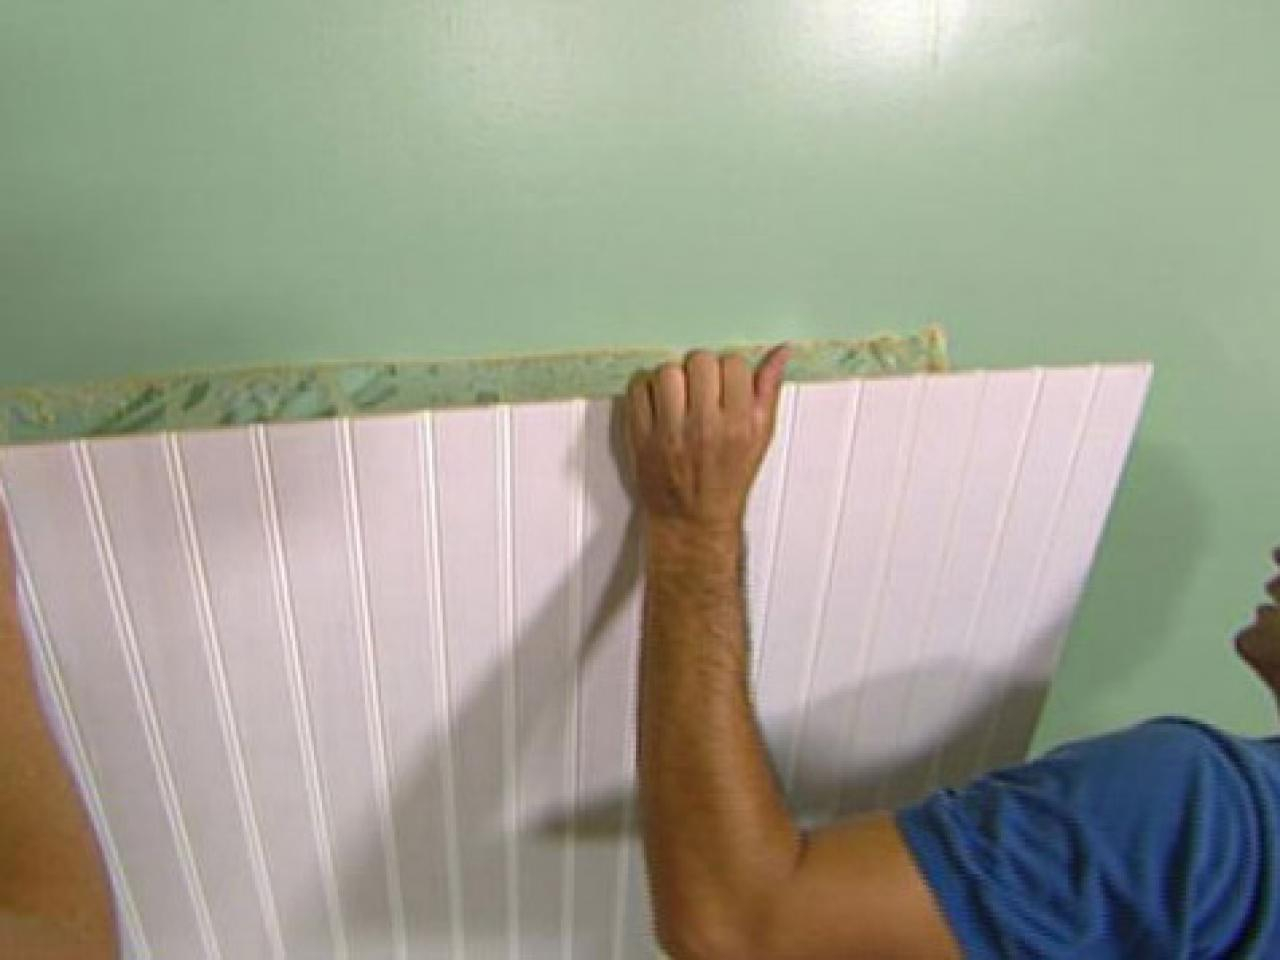 Amazing How To Install Beadboard Wainscoting | How-Tos | Diy intended for Diy Beadboard